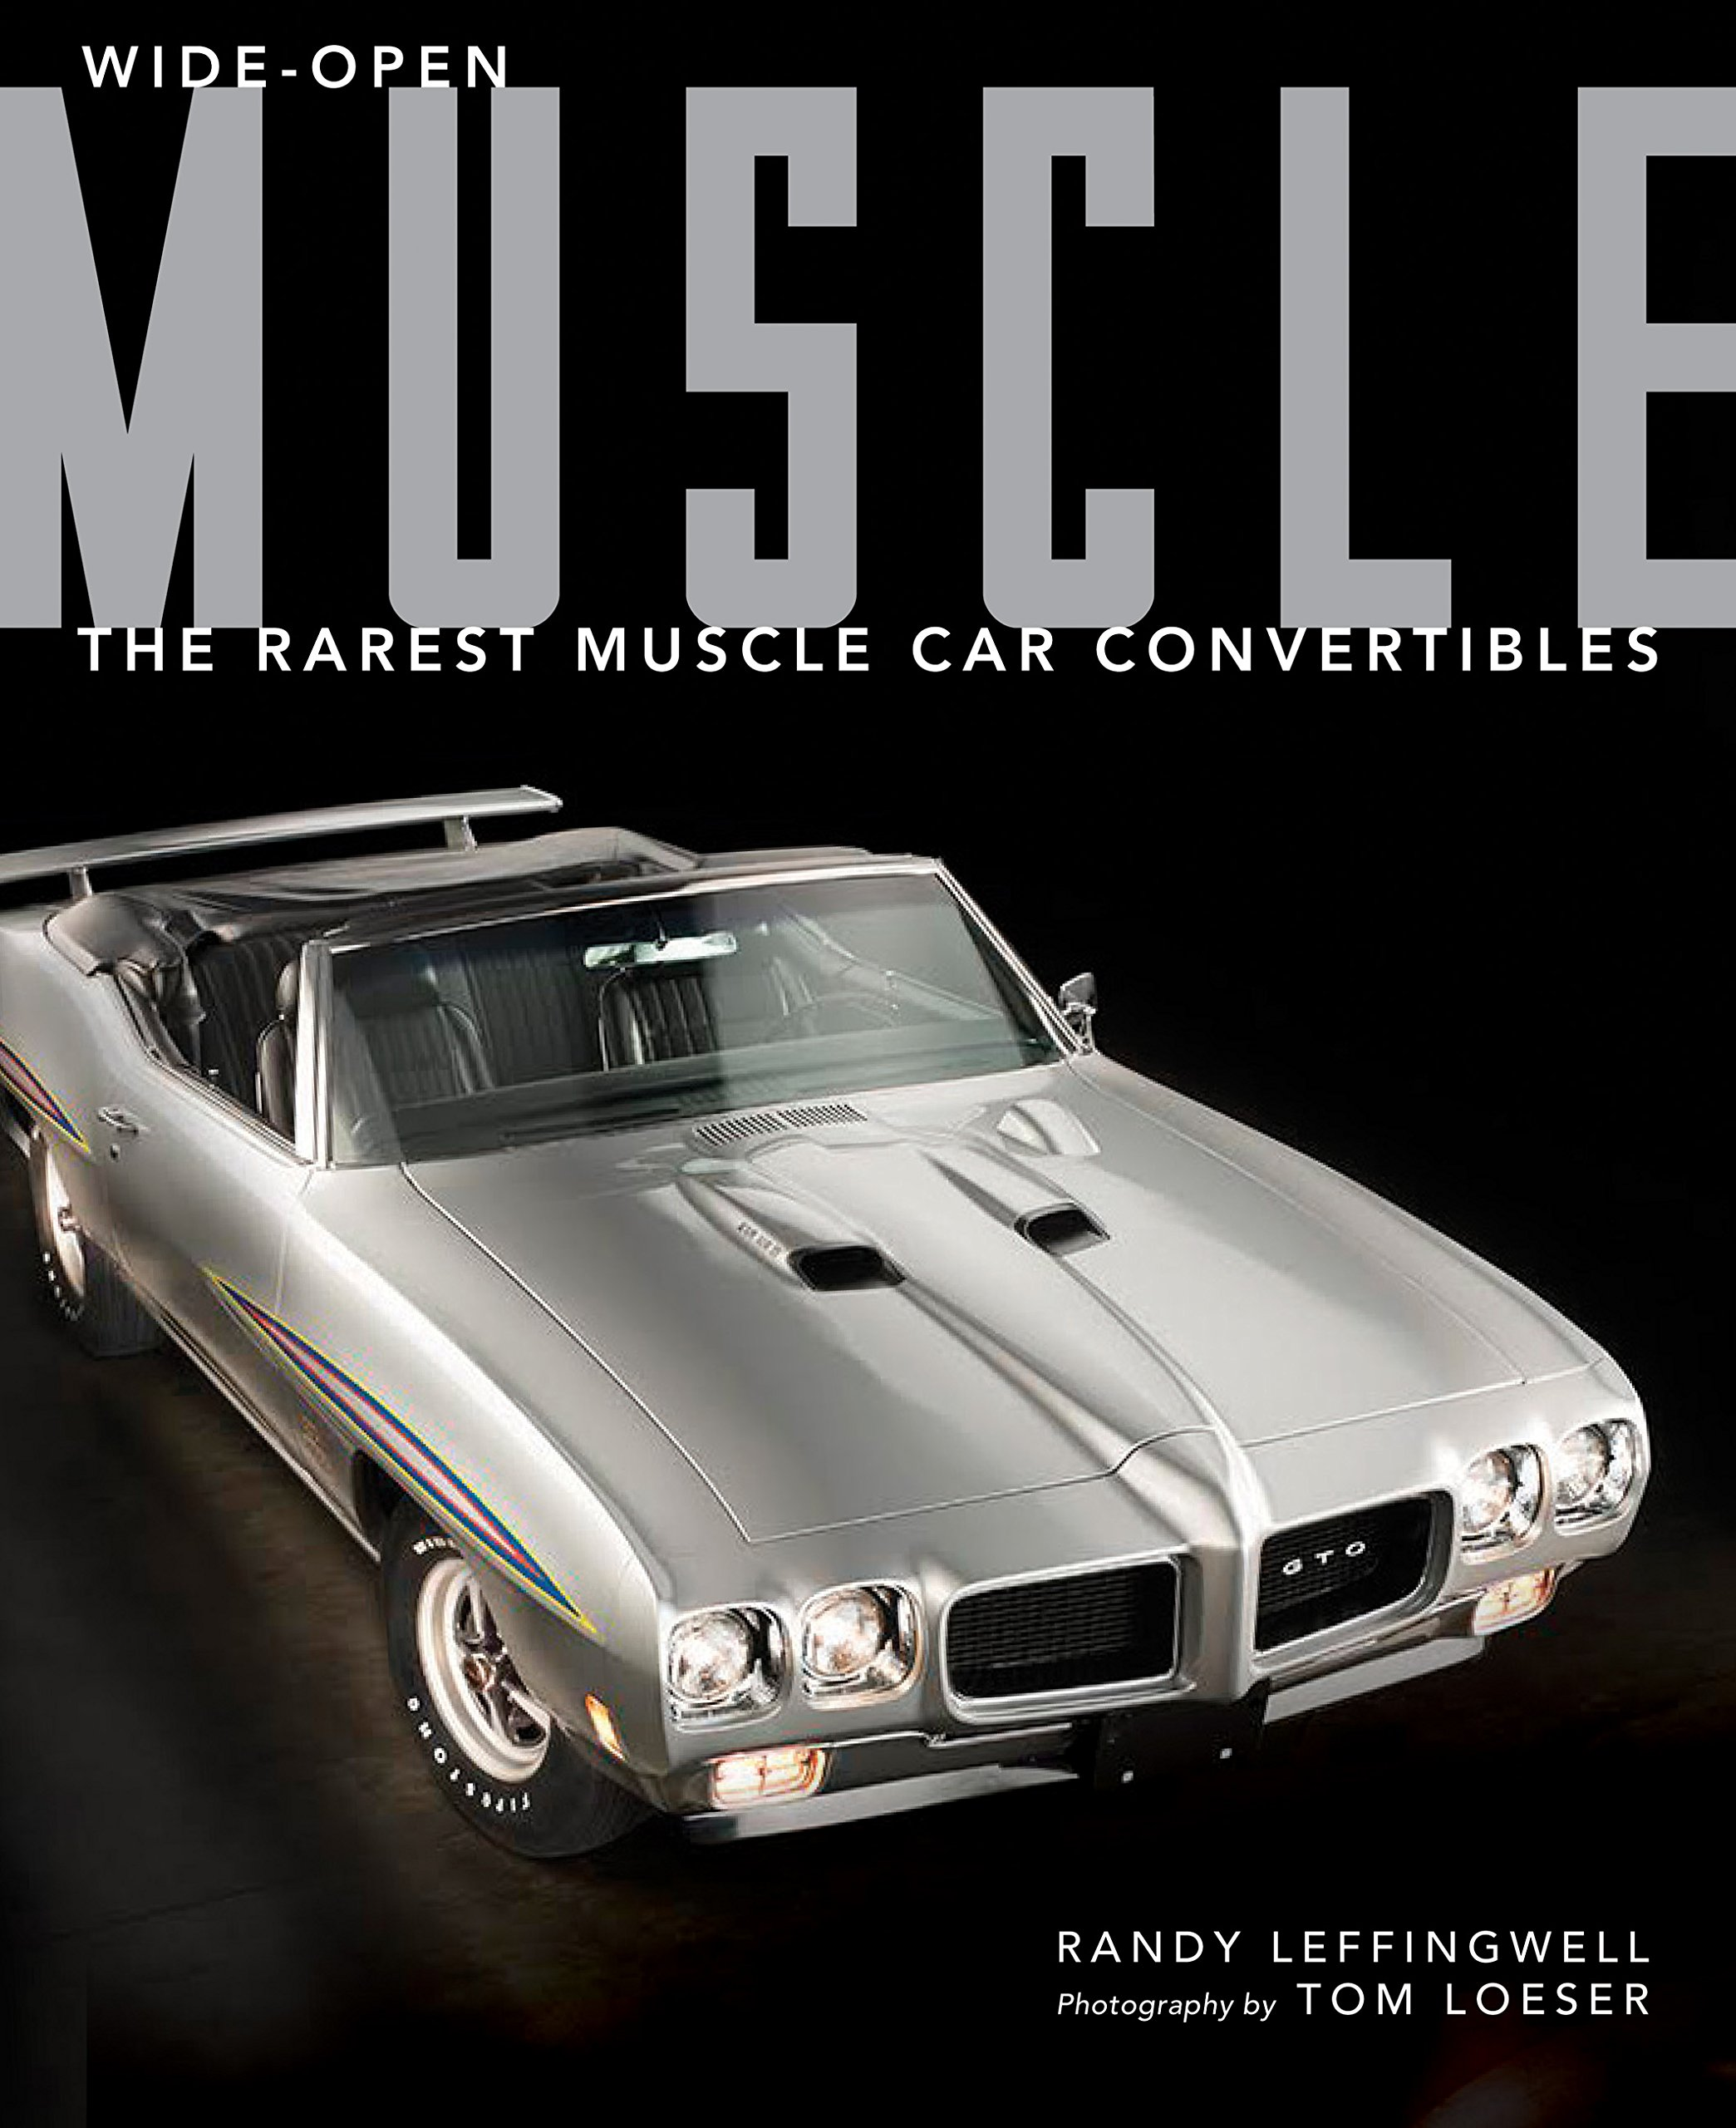 Wide-Open Muscle: The Rarest Muscle Car Convertibles pdf